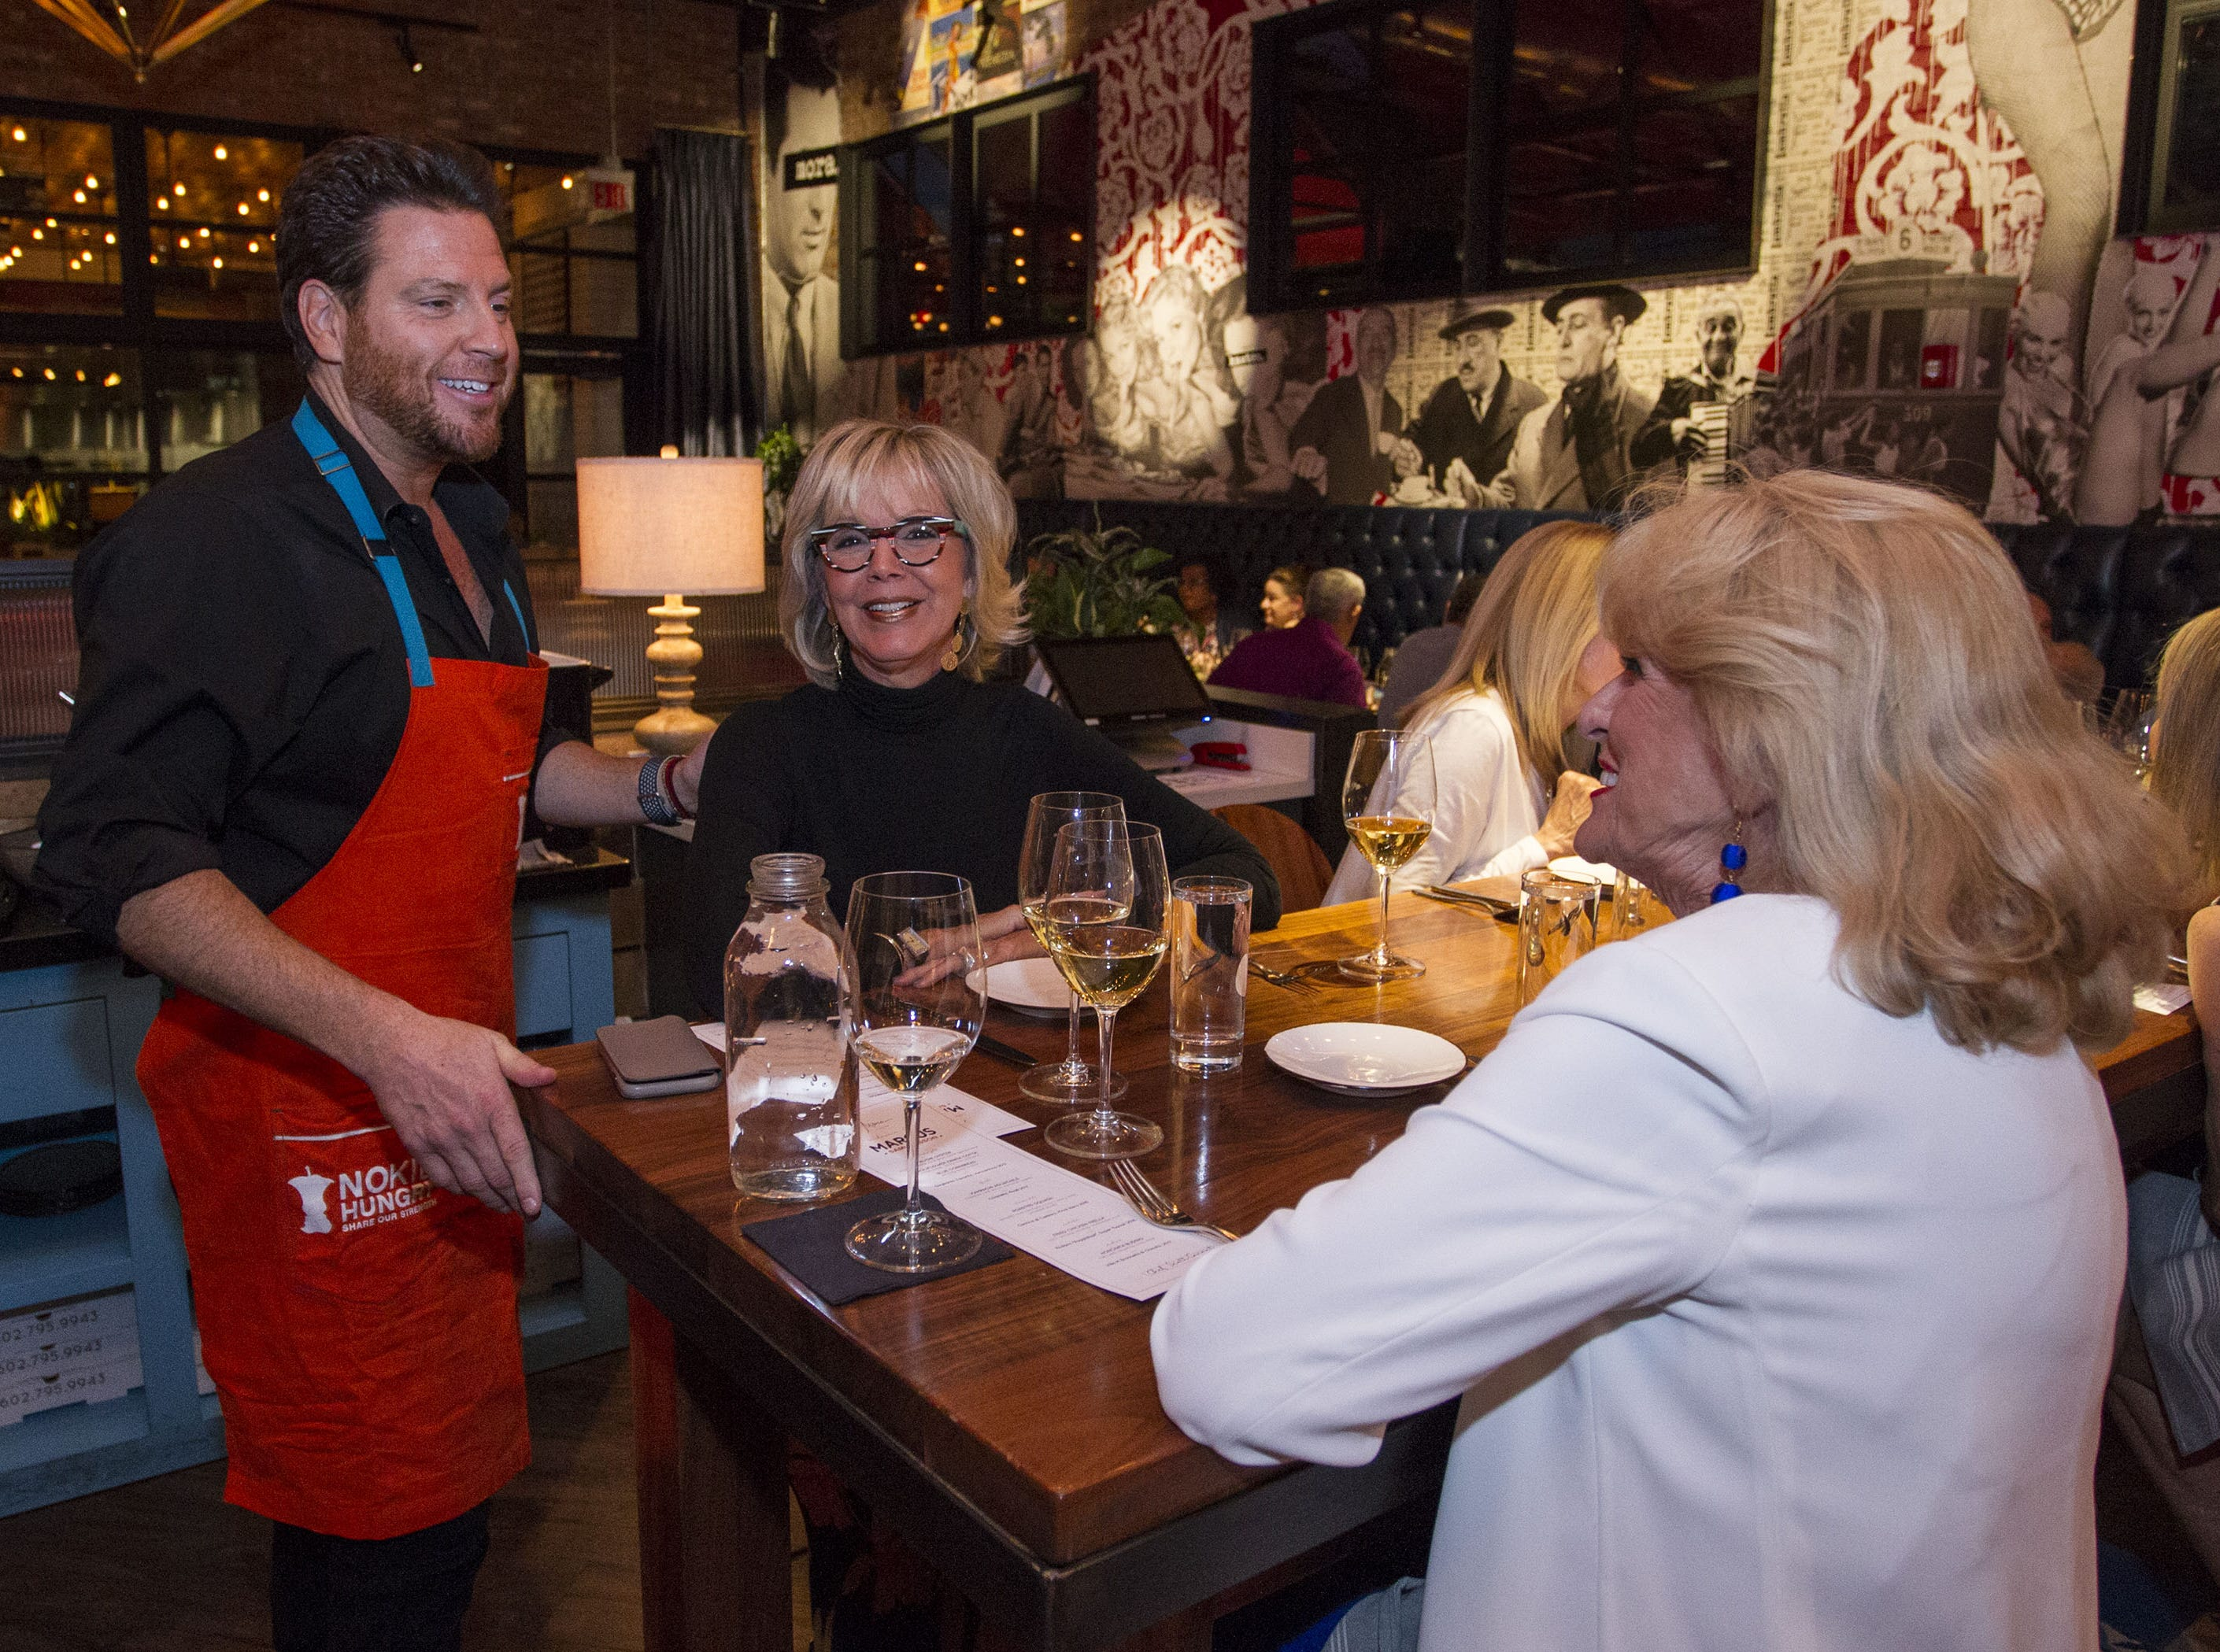 Chef Scott Conant shares a laugh with Carol Reid (middle) and Sharon Rose (right) during the exclusive kickoff dining event at Mora Italian for azcentral Wine & Food Experience.